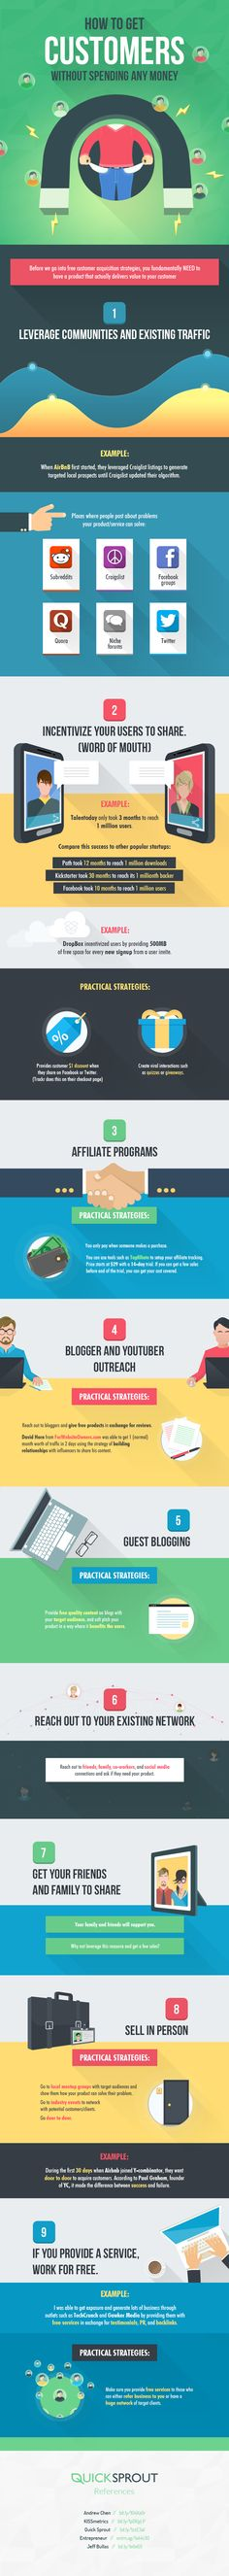 [INFOGRAPHIC] How to Acquire Customers Without a Marketing Budget: Leverage Communities; Incentivize; Affiliate; Guest Blogging; more...